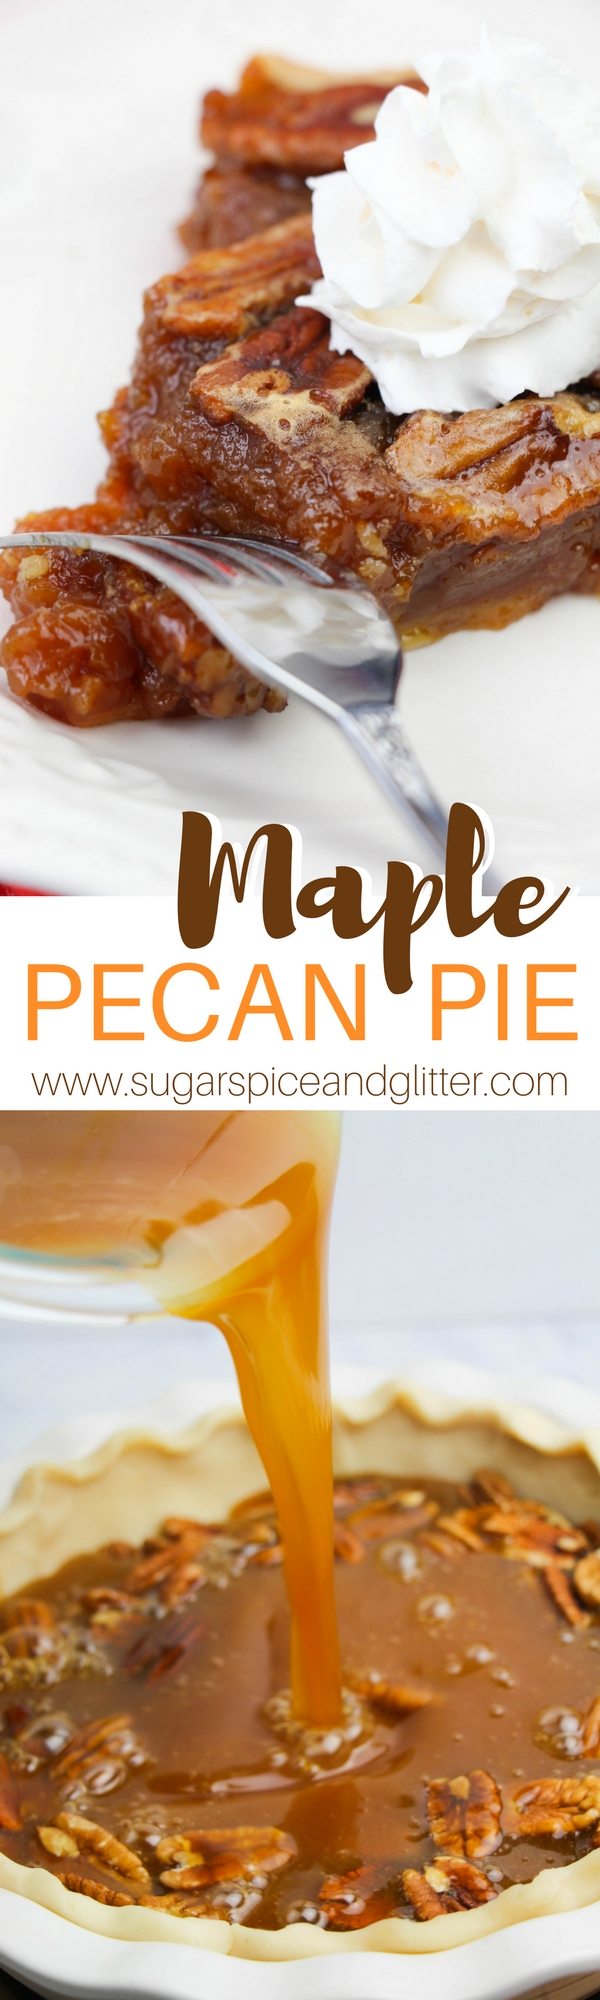 This Maple Pecan Pie recipe is made with no corn syrup and a foolproof pie crust that is buttery and flakey. This is the best Pecan Pie you will ever make!